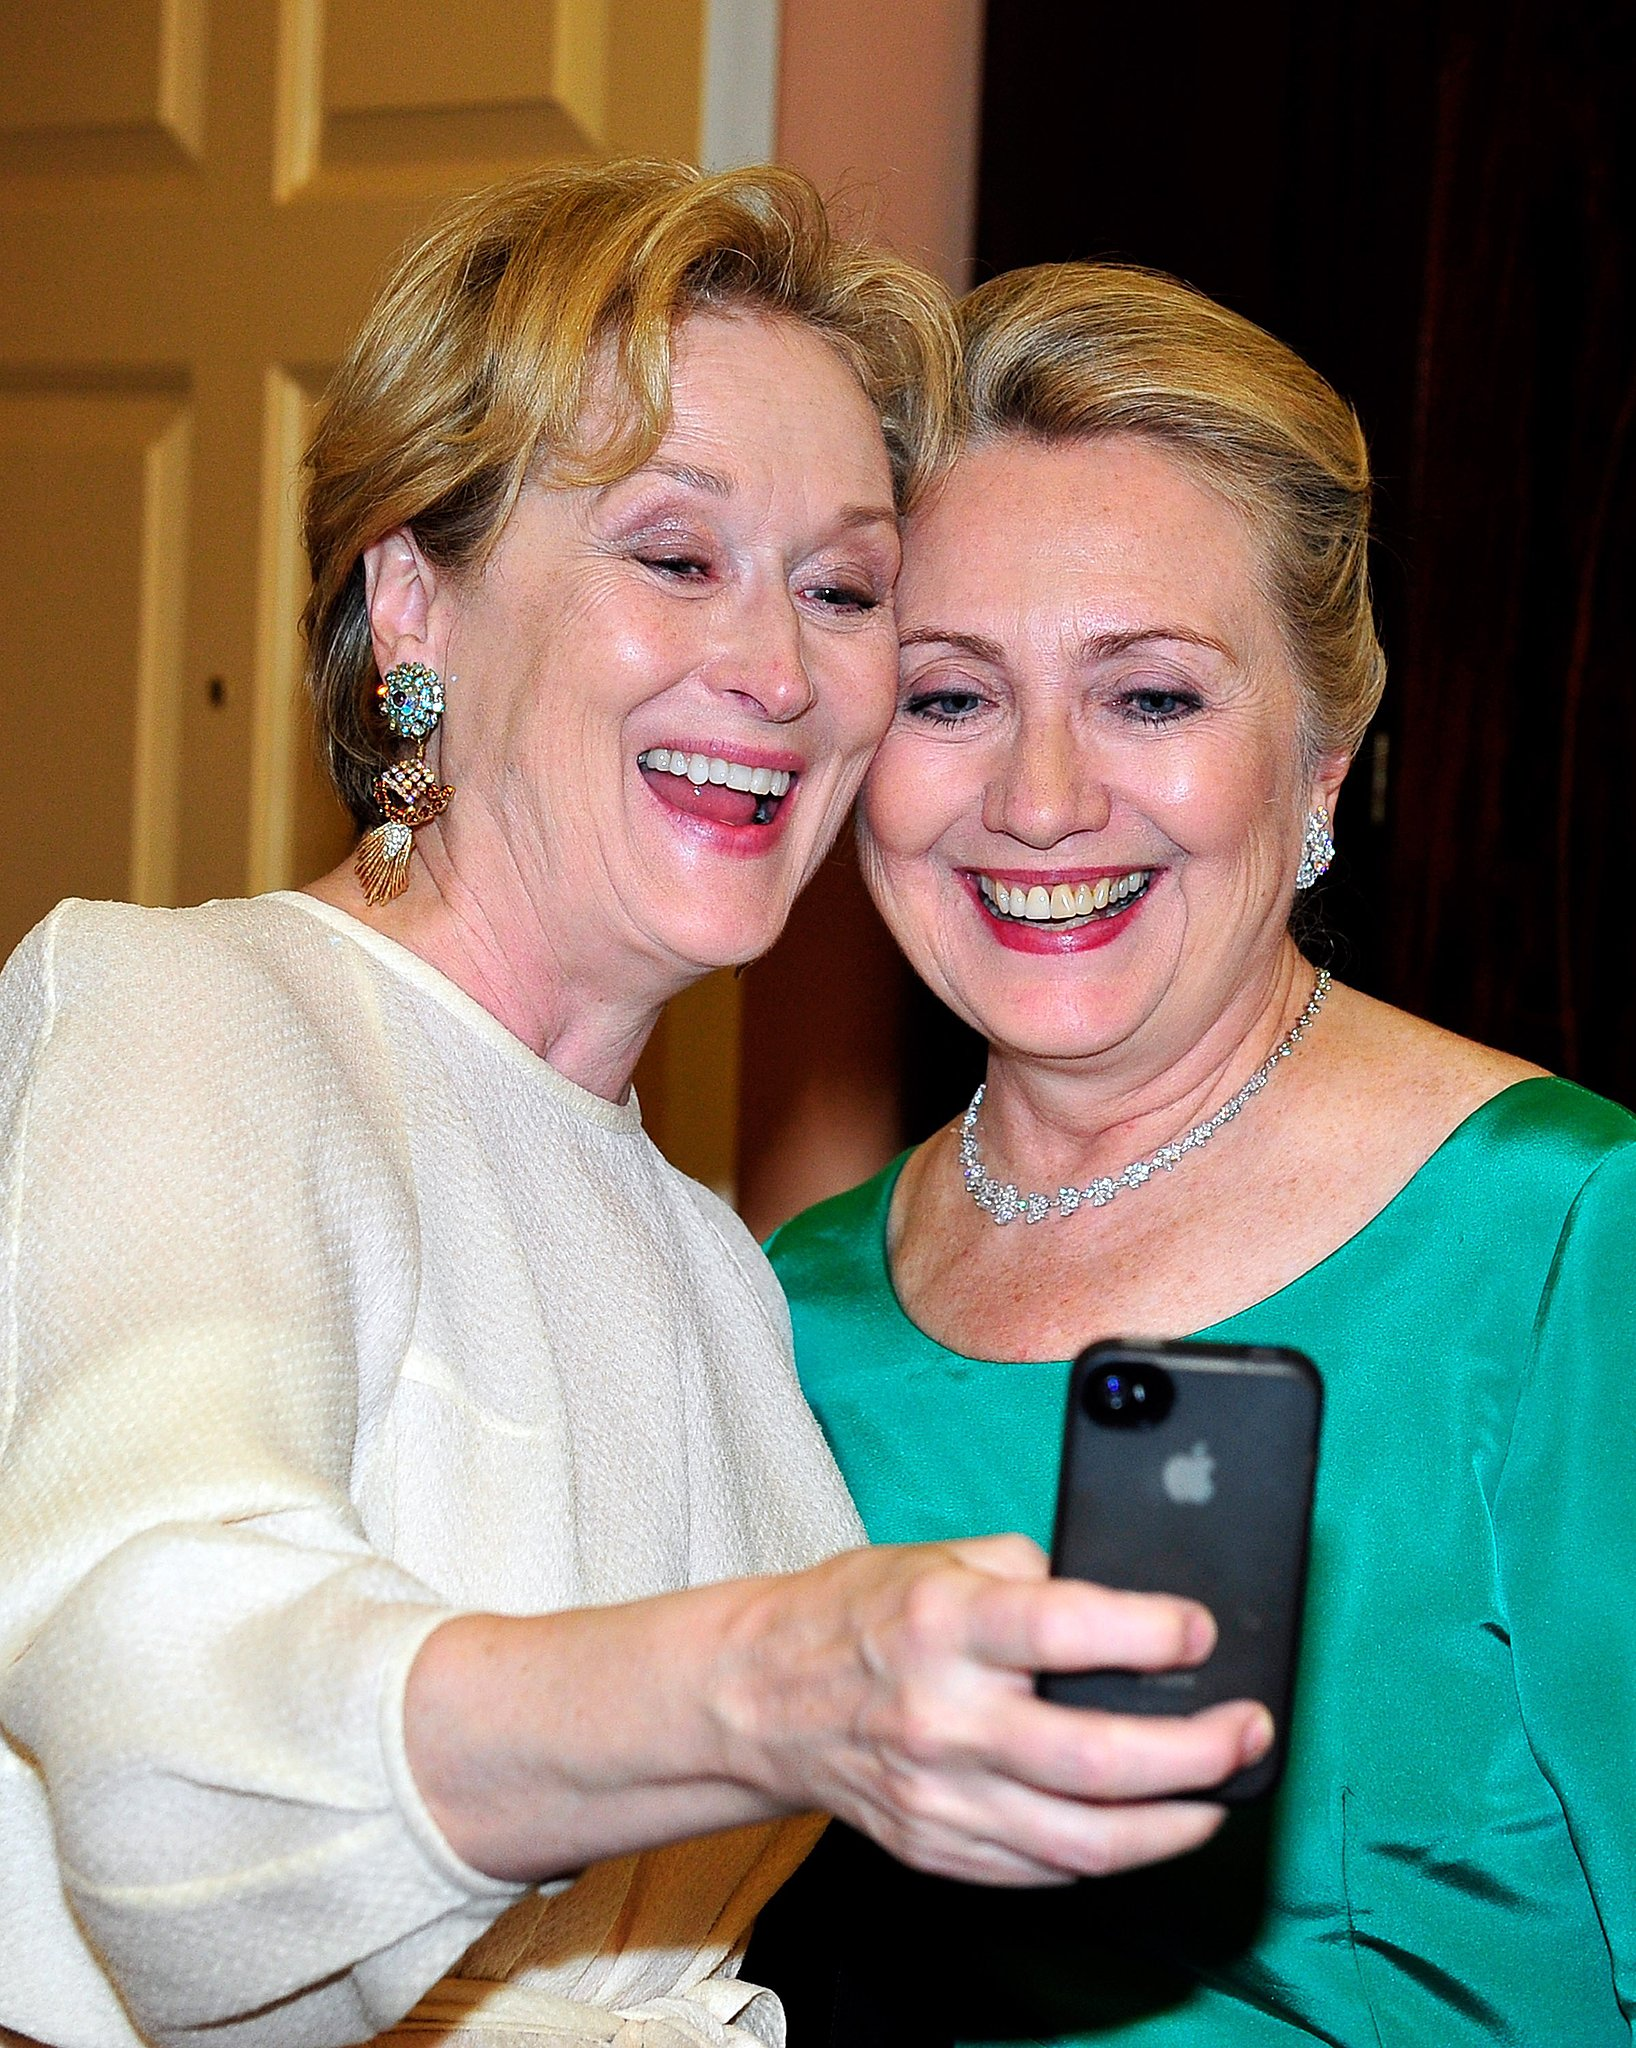 Meryl Streep couldn't pass up an opportunity to take a selfie with Hillary Clinton during the Kennedy Center Honors